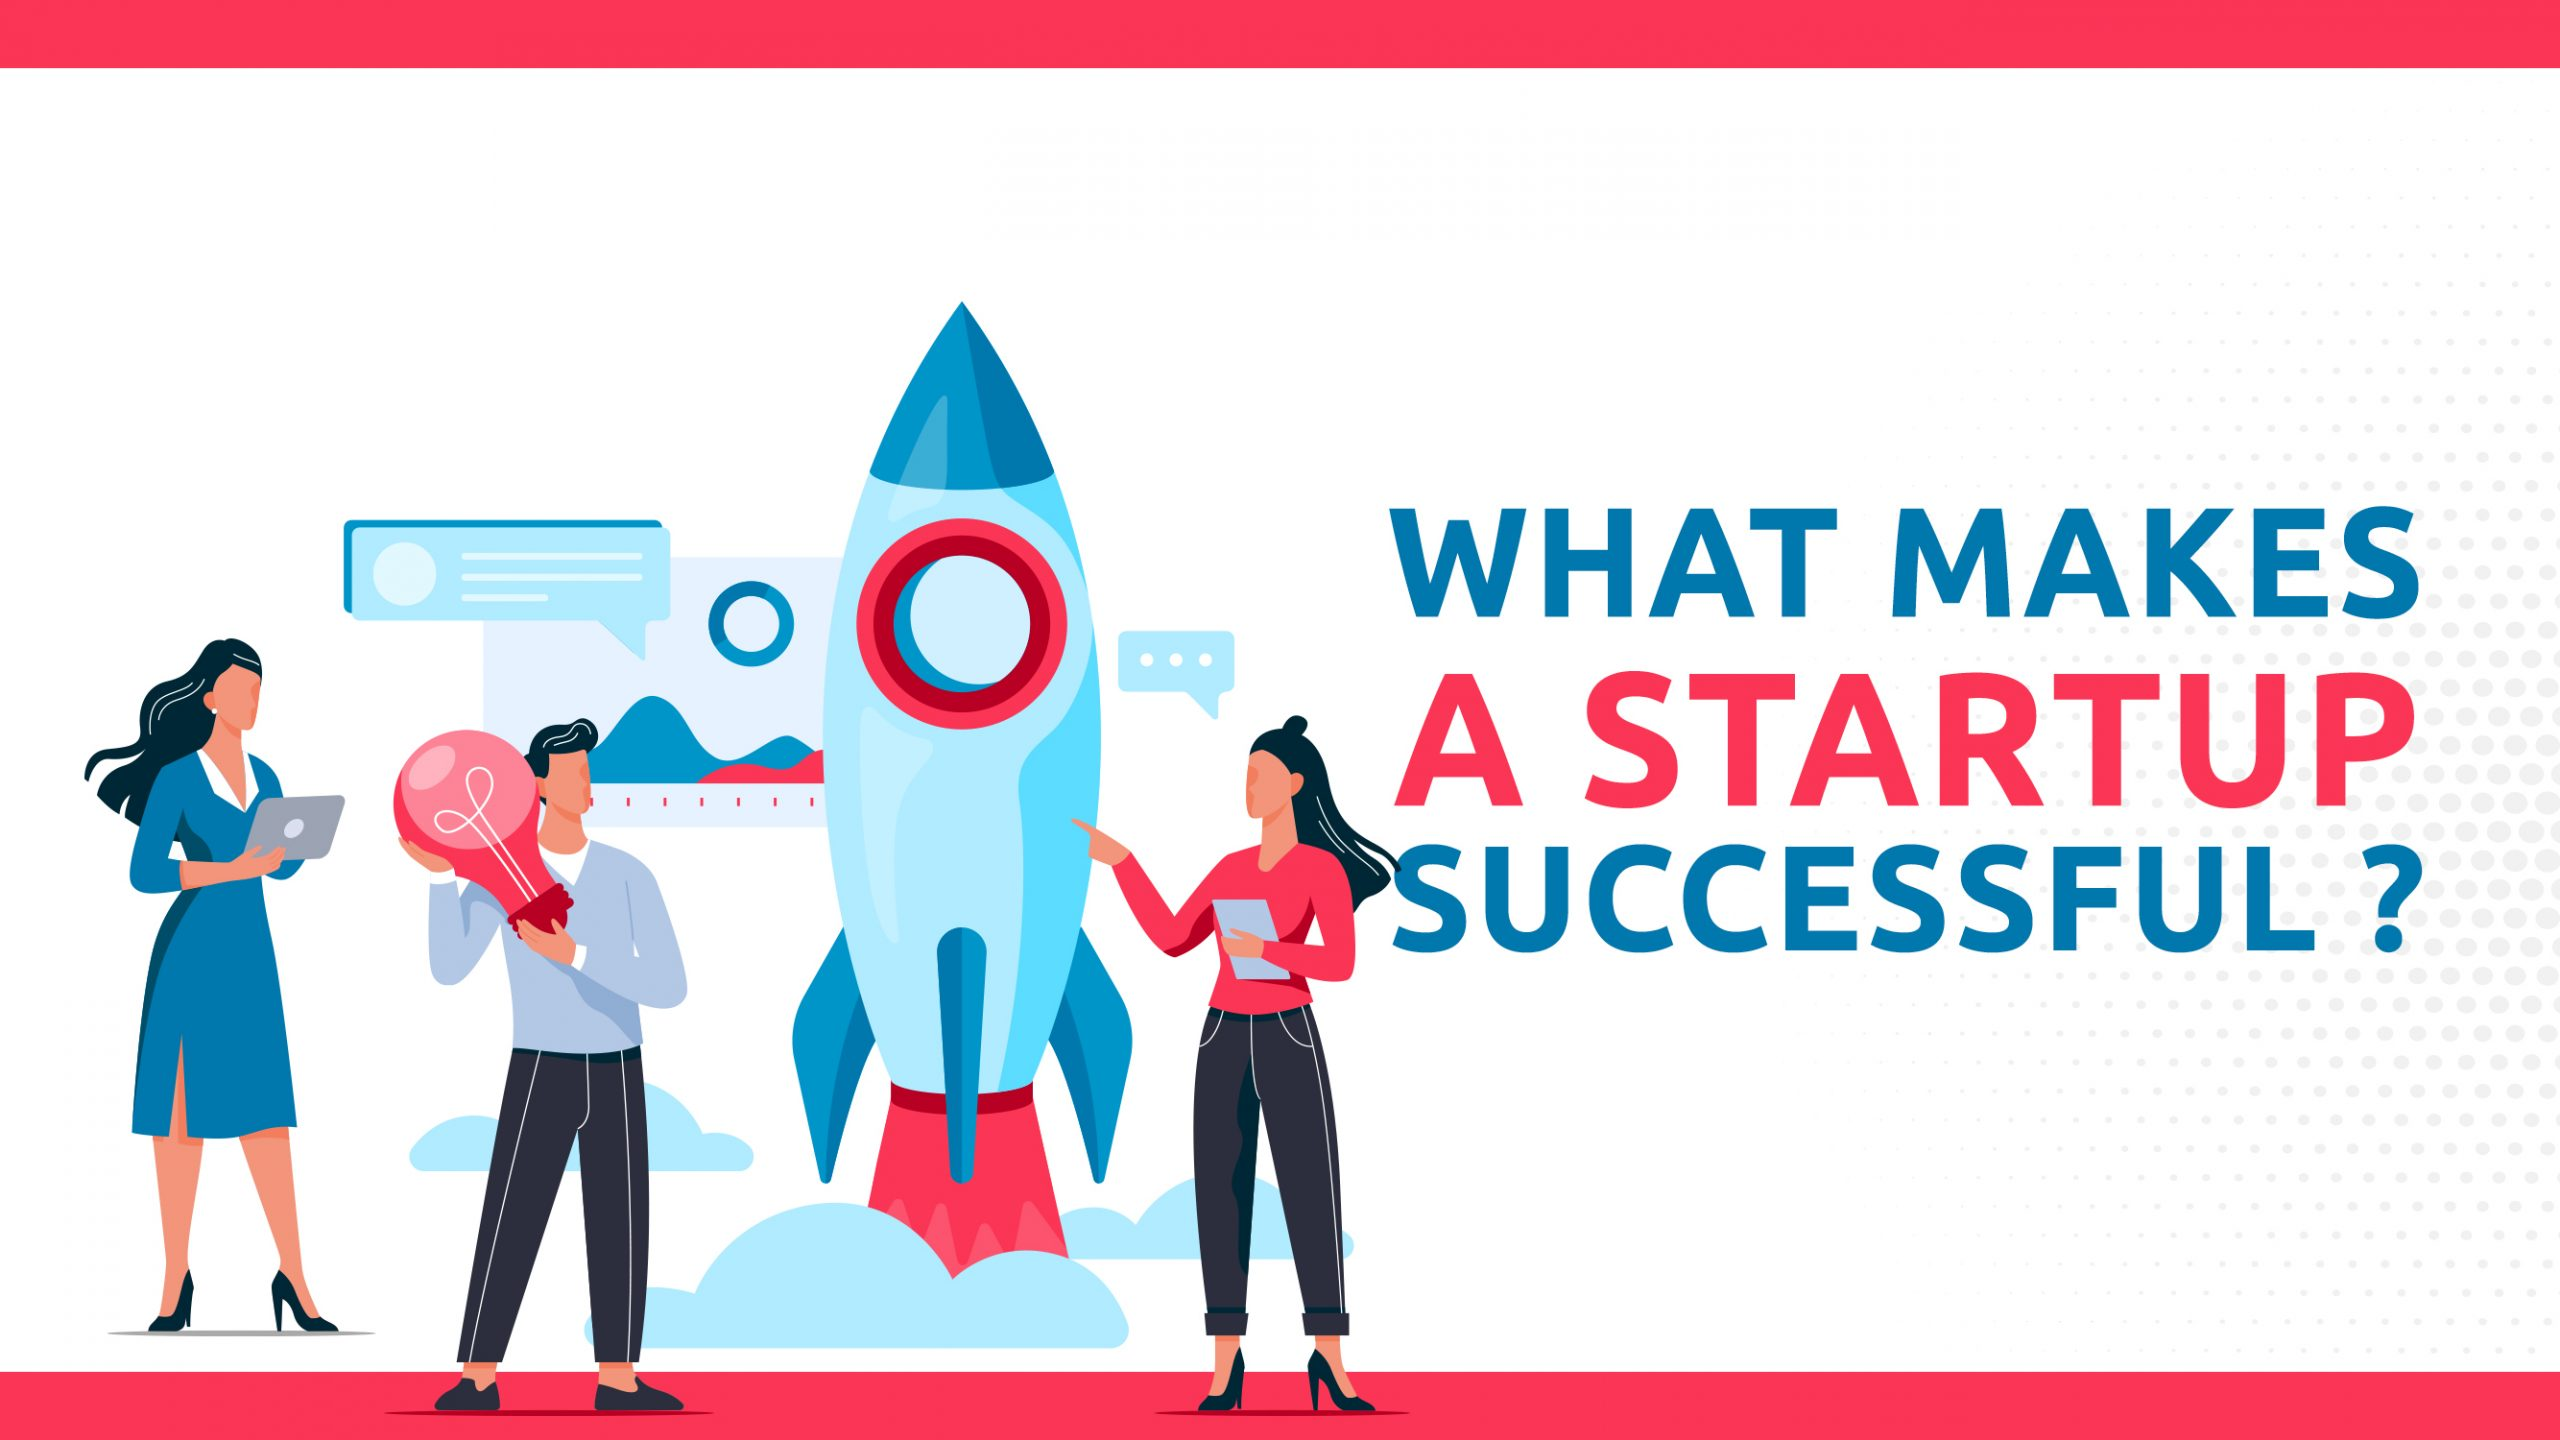 What Makes A Startup Successful?